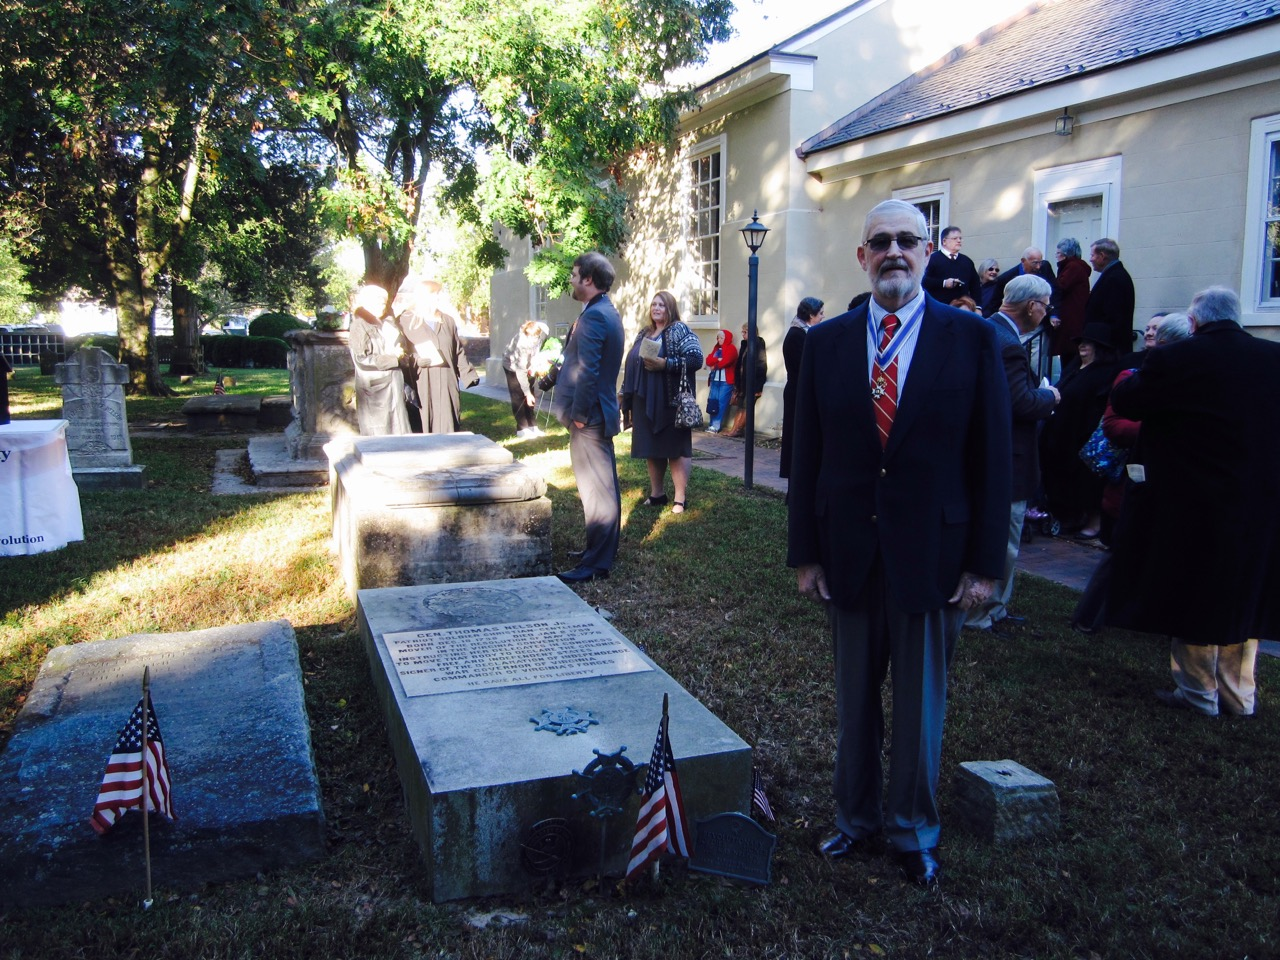 Norfolk Chapter SAR President Maury Weeks at the grave of General Thomas Nelson, Jr